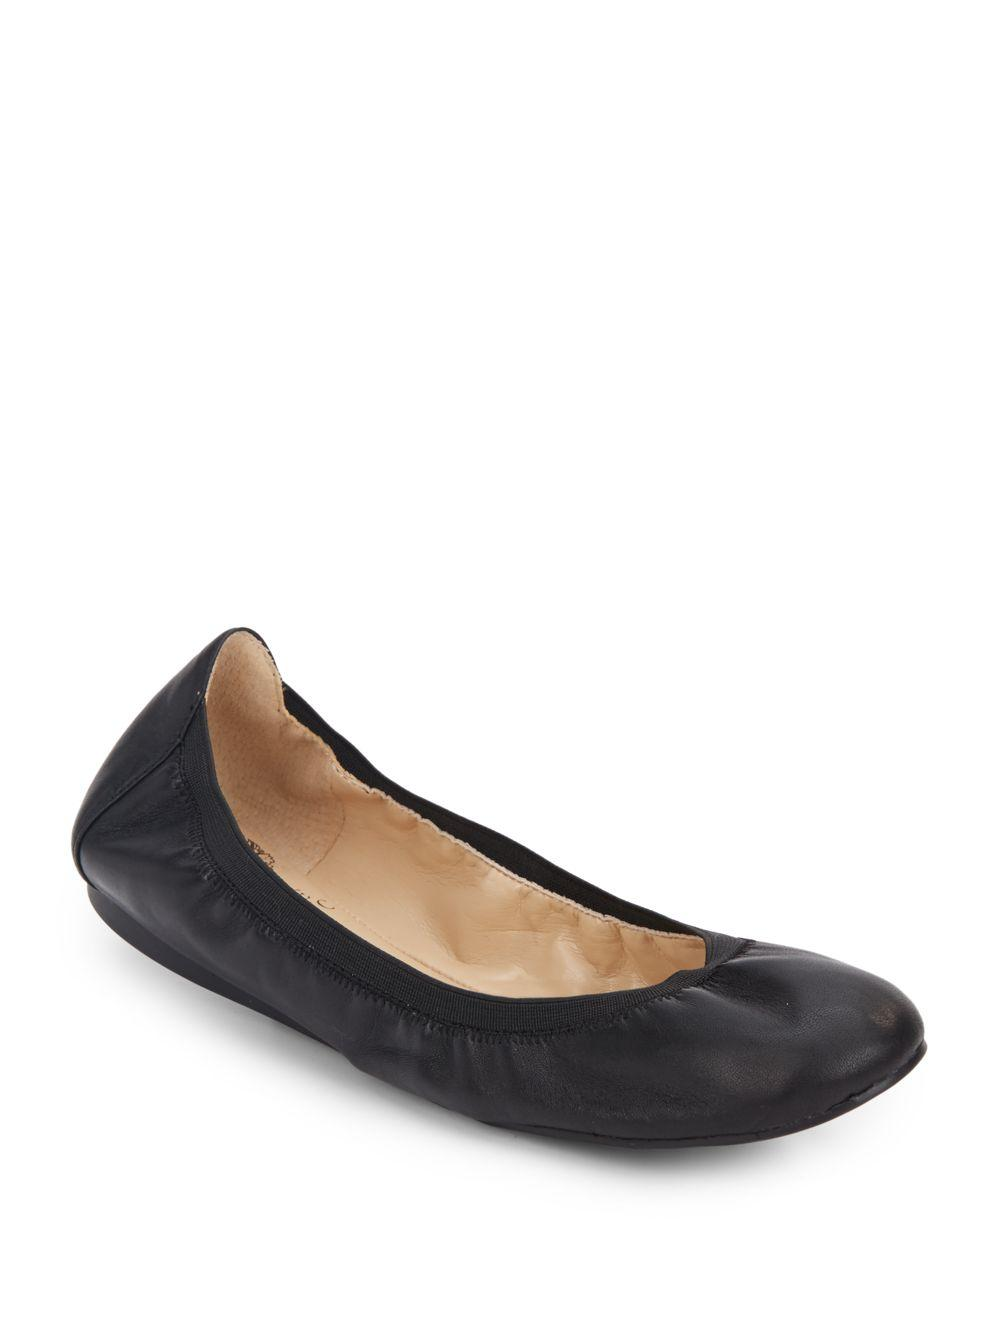 Vince Camuto Eliyah Leather Flats In Black Lyst